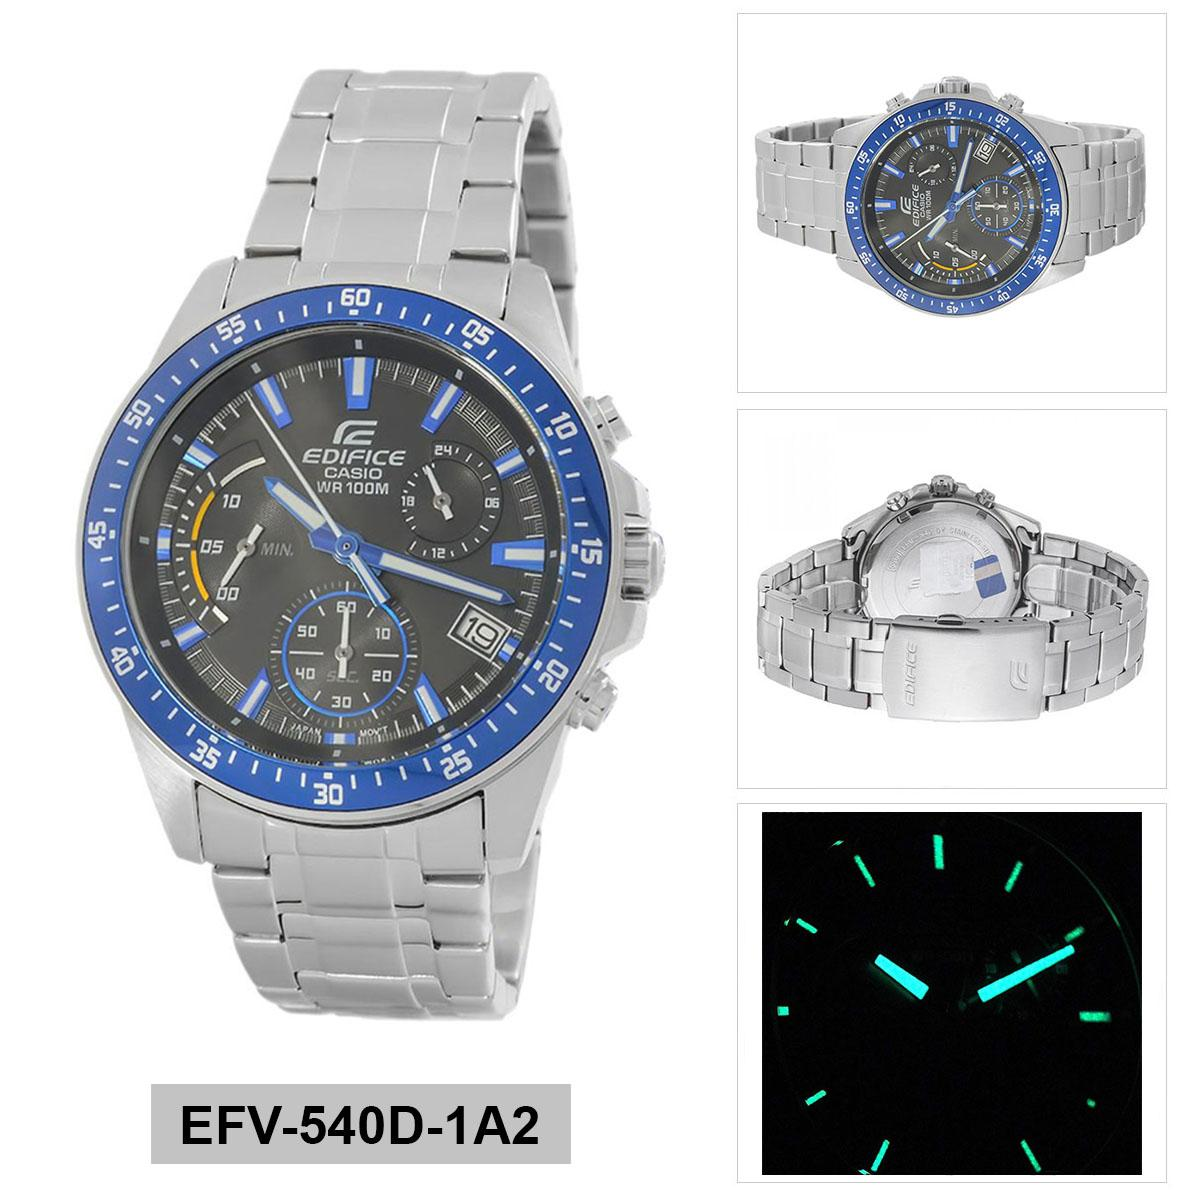 Buy Sell Cheapest Casio Mens Amw330 Best Quality Product Deals Edifice Efr 533d 1av Silver Biru Chronograph Stainless Steel Case Bracelet Nwt